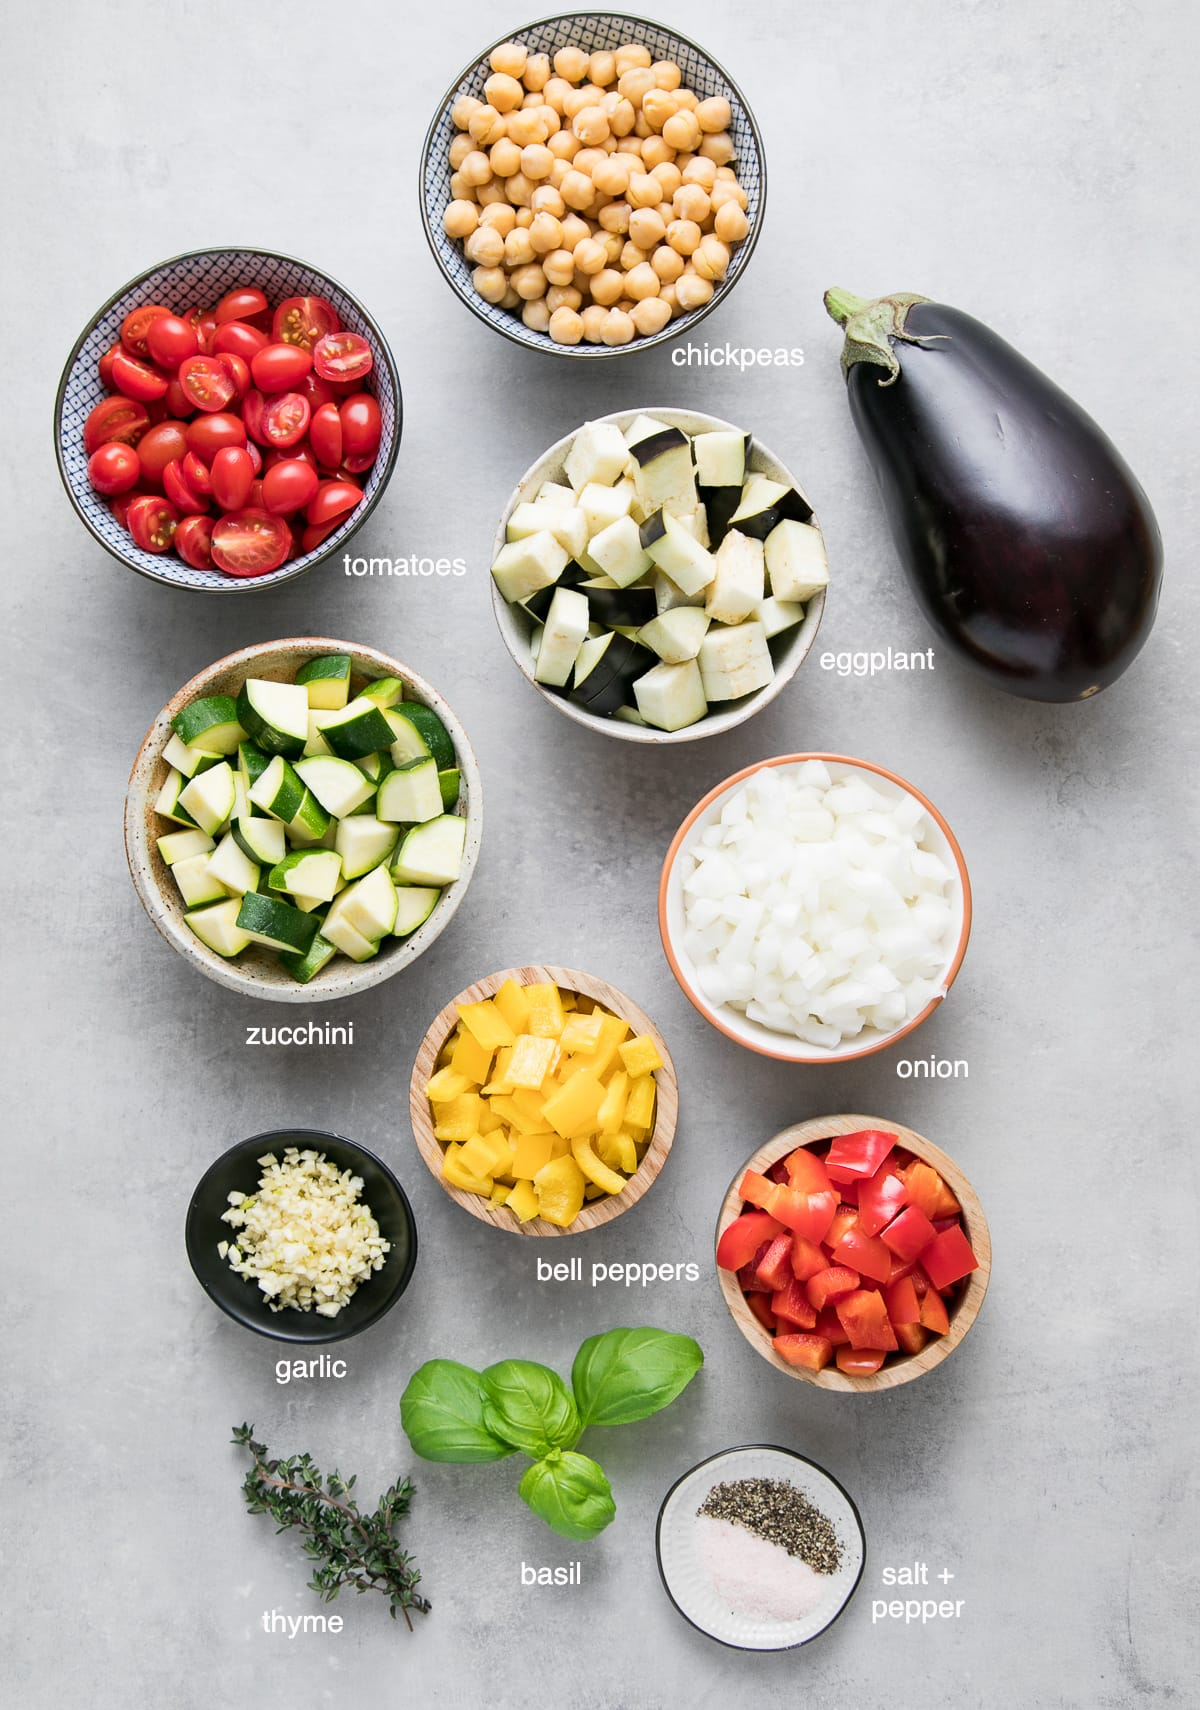 top down view of ingredients used to make chickpea ratatouille.